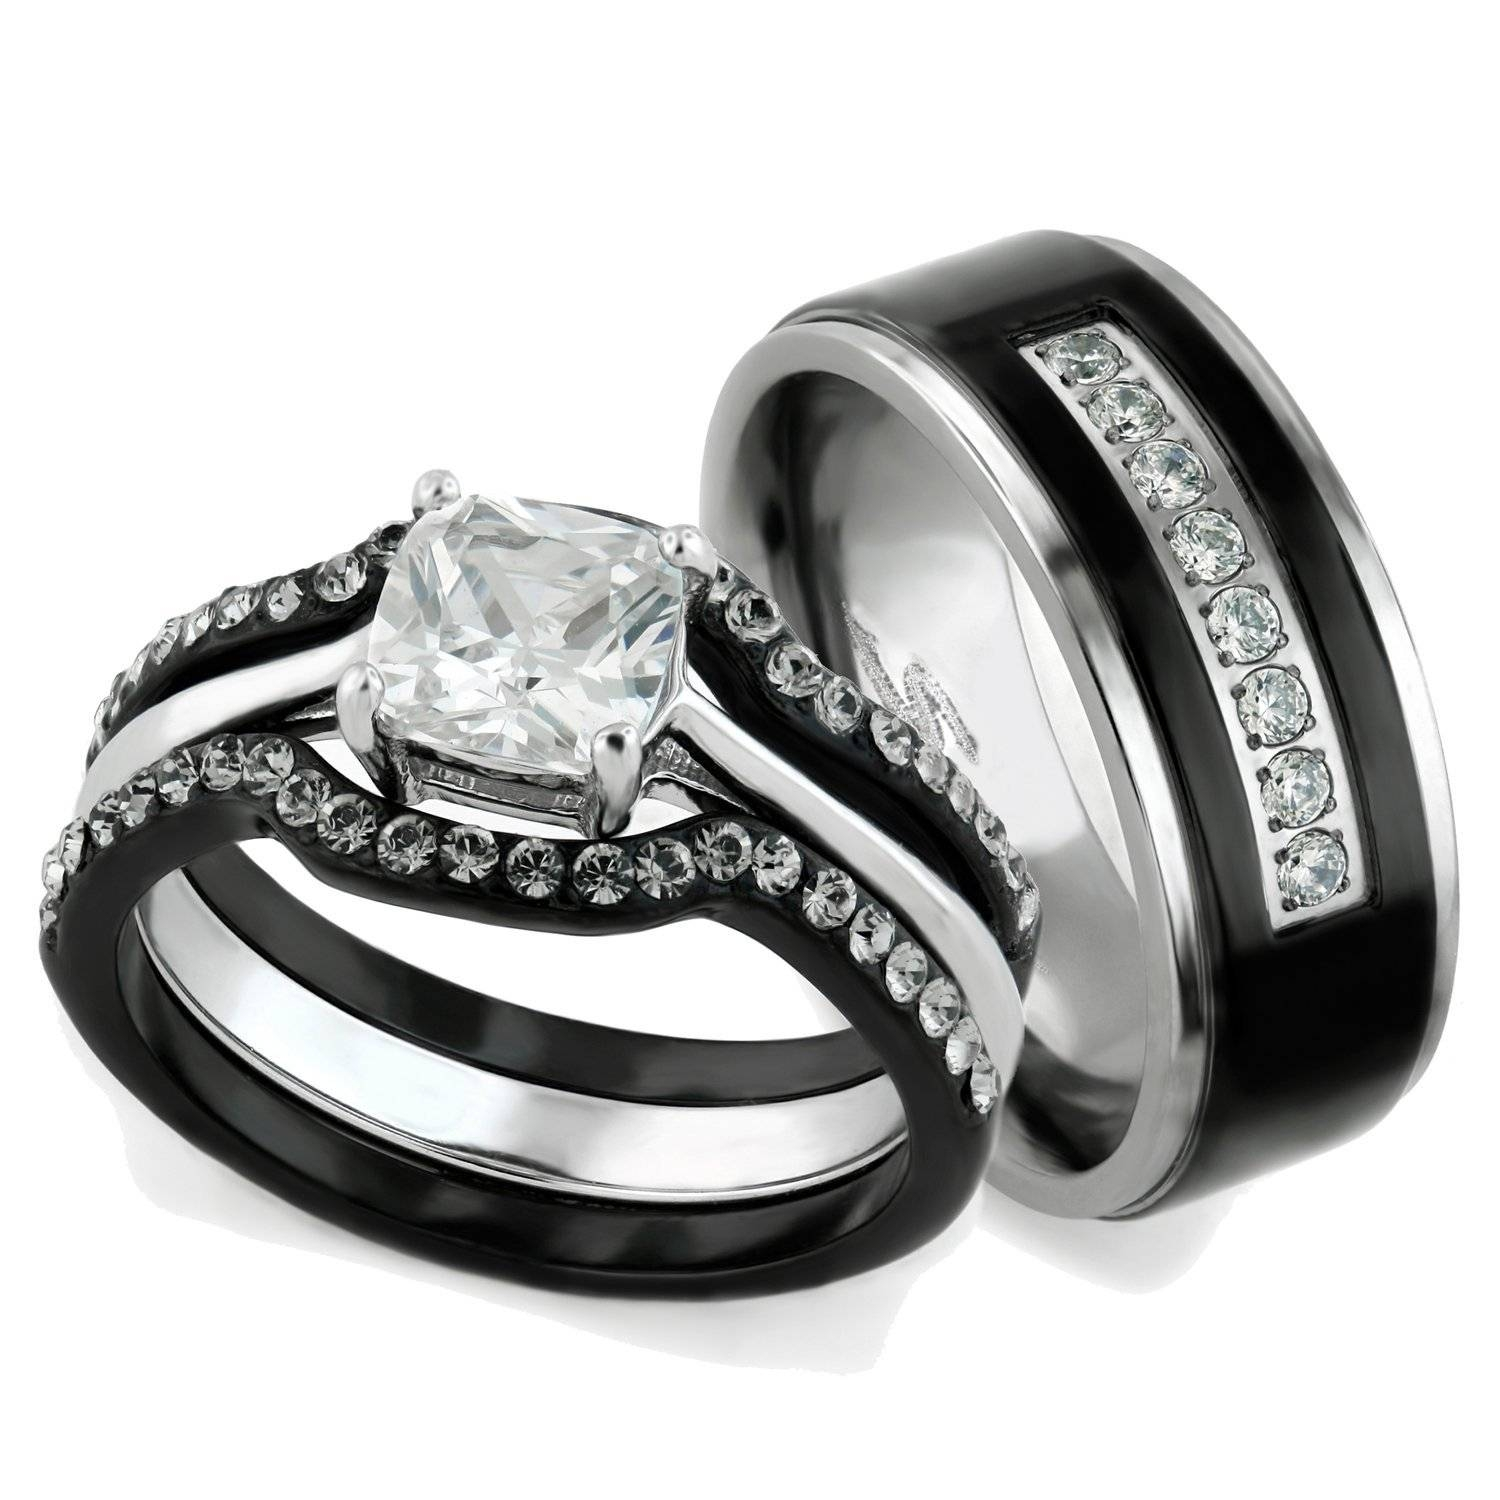 45 Walmart Wedding Sets, Walmart Wedding Rings Sets For Him And For Walmart White Gold Wedding Bands (Gallery 5 of 15)